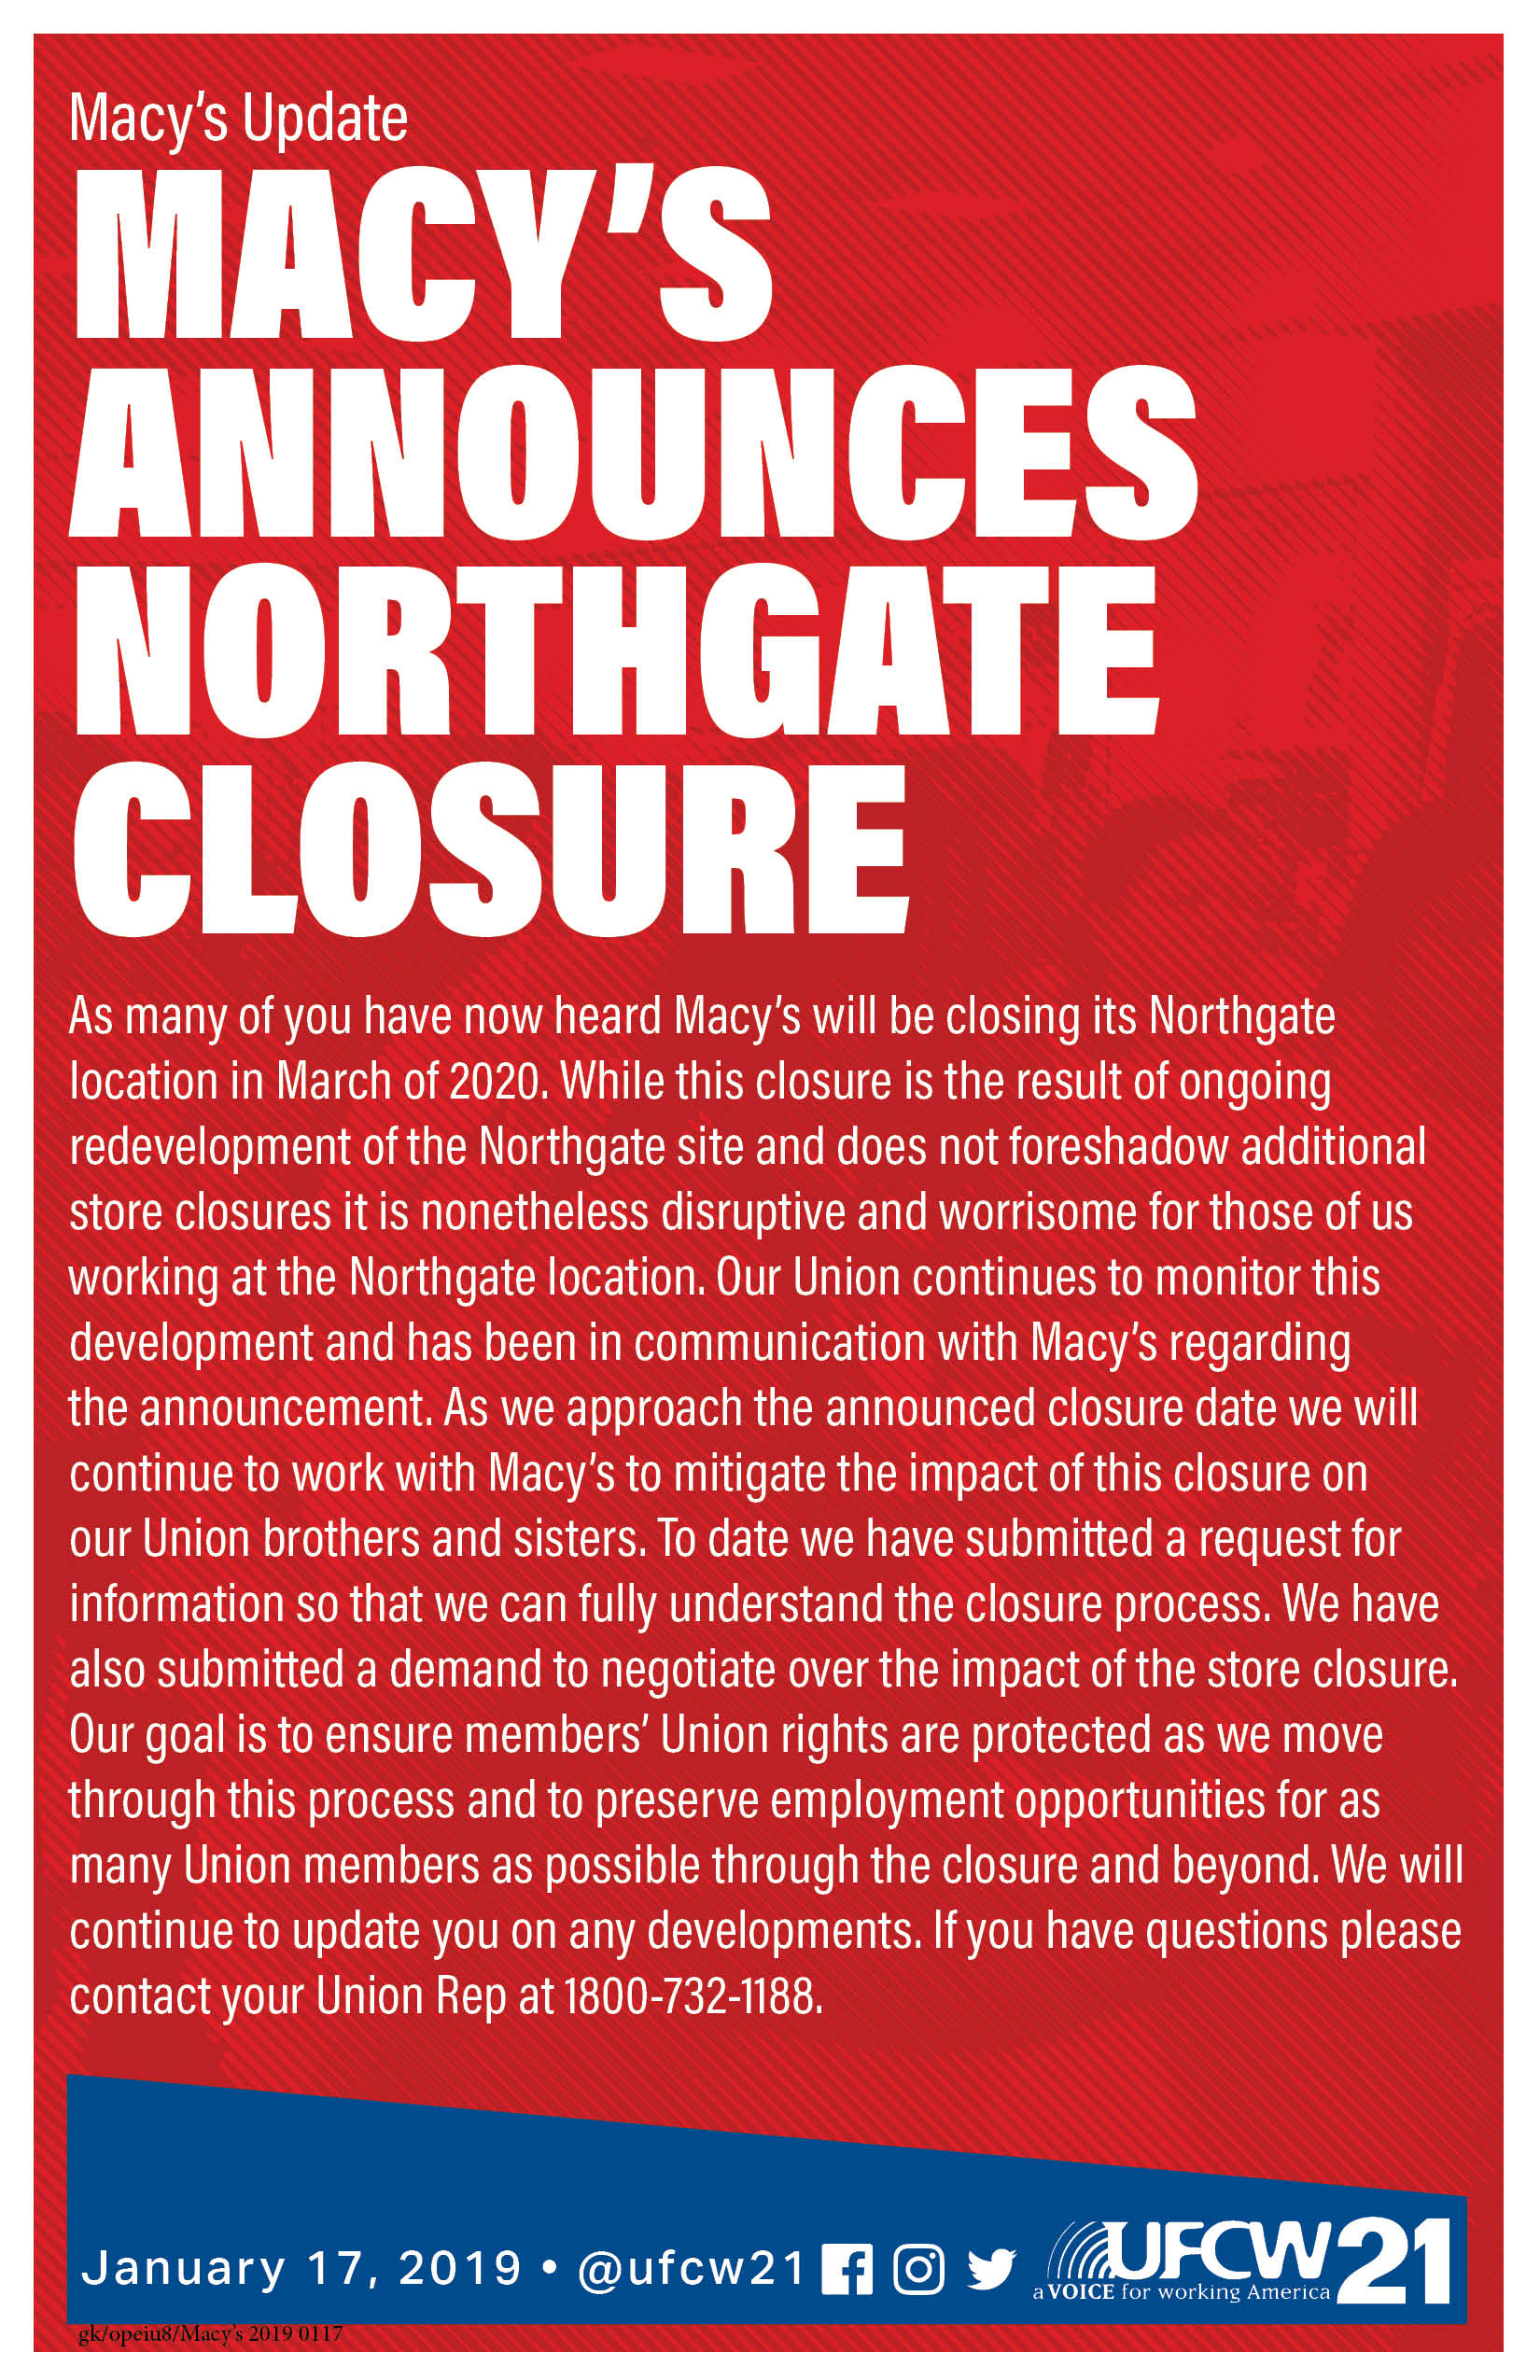 2019 0117 Macys Northgate Closure Update.jpg